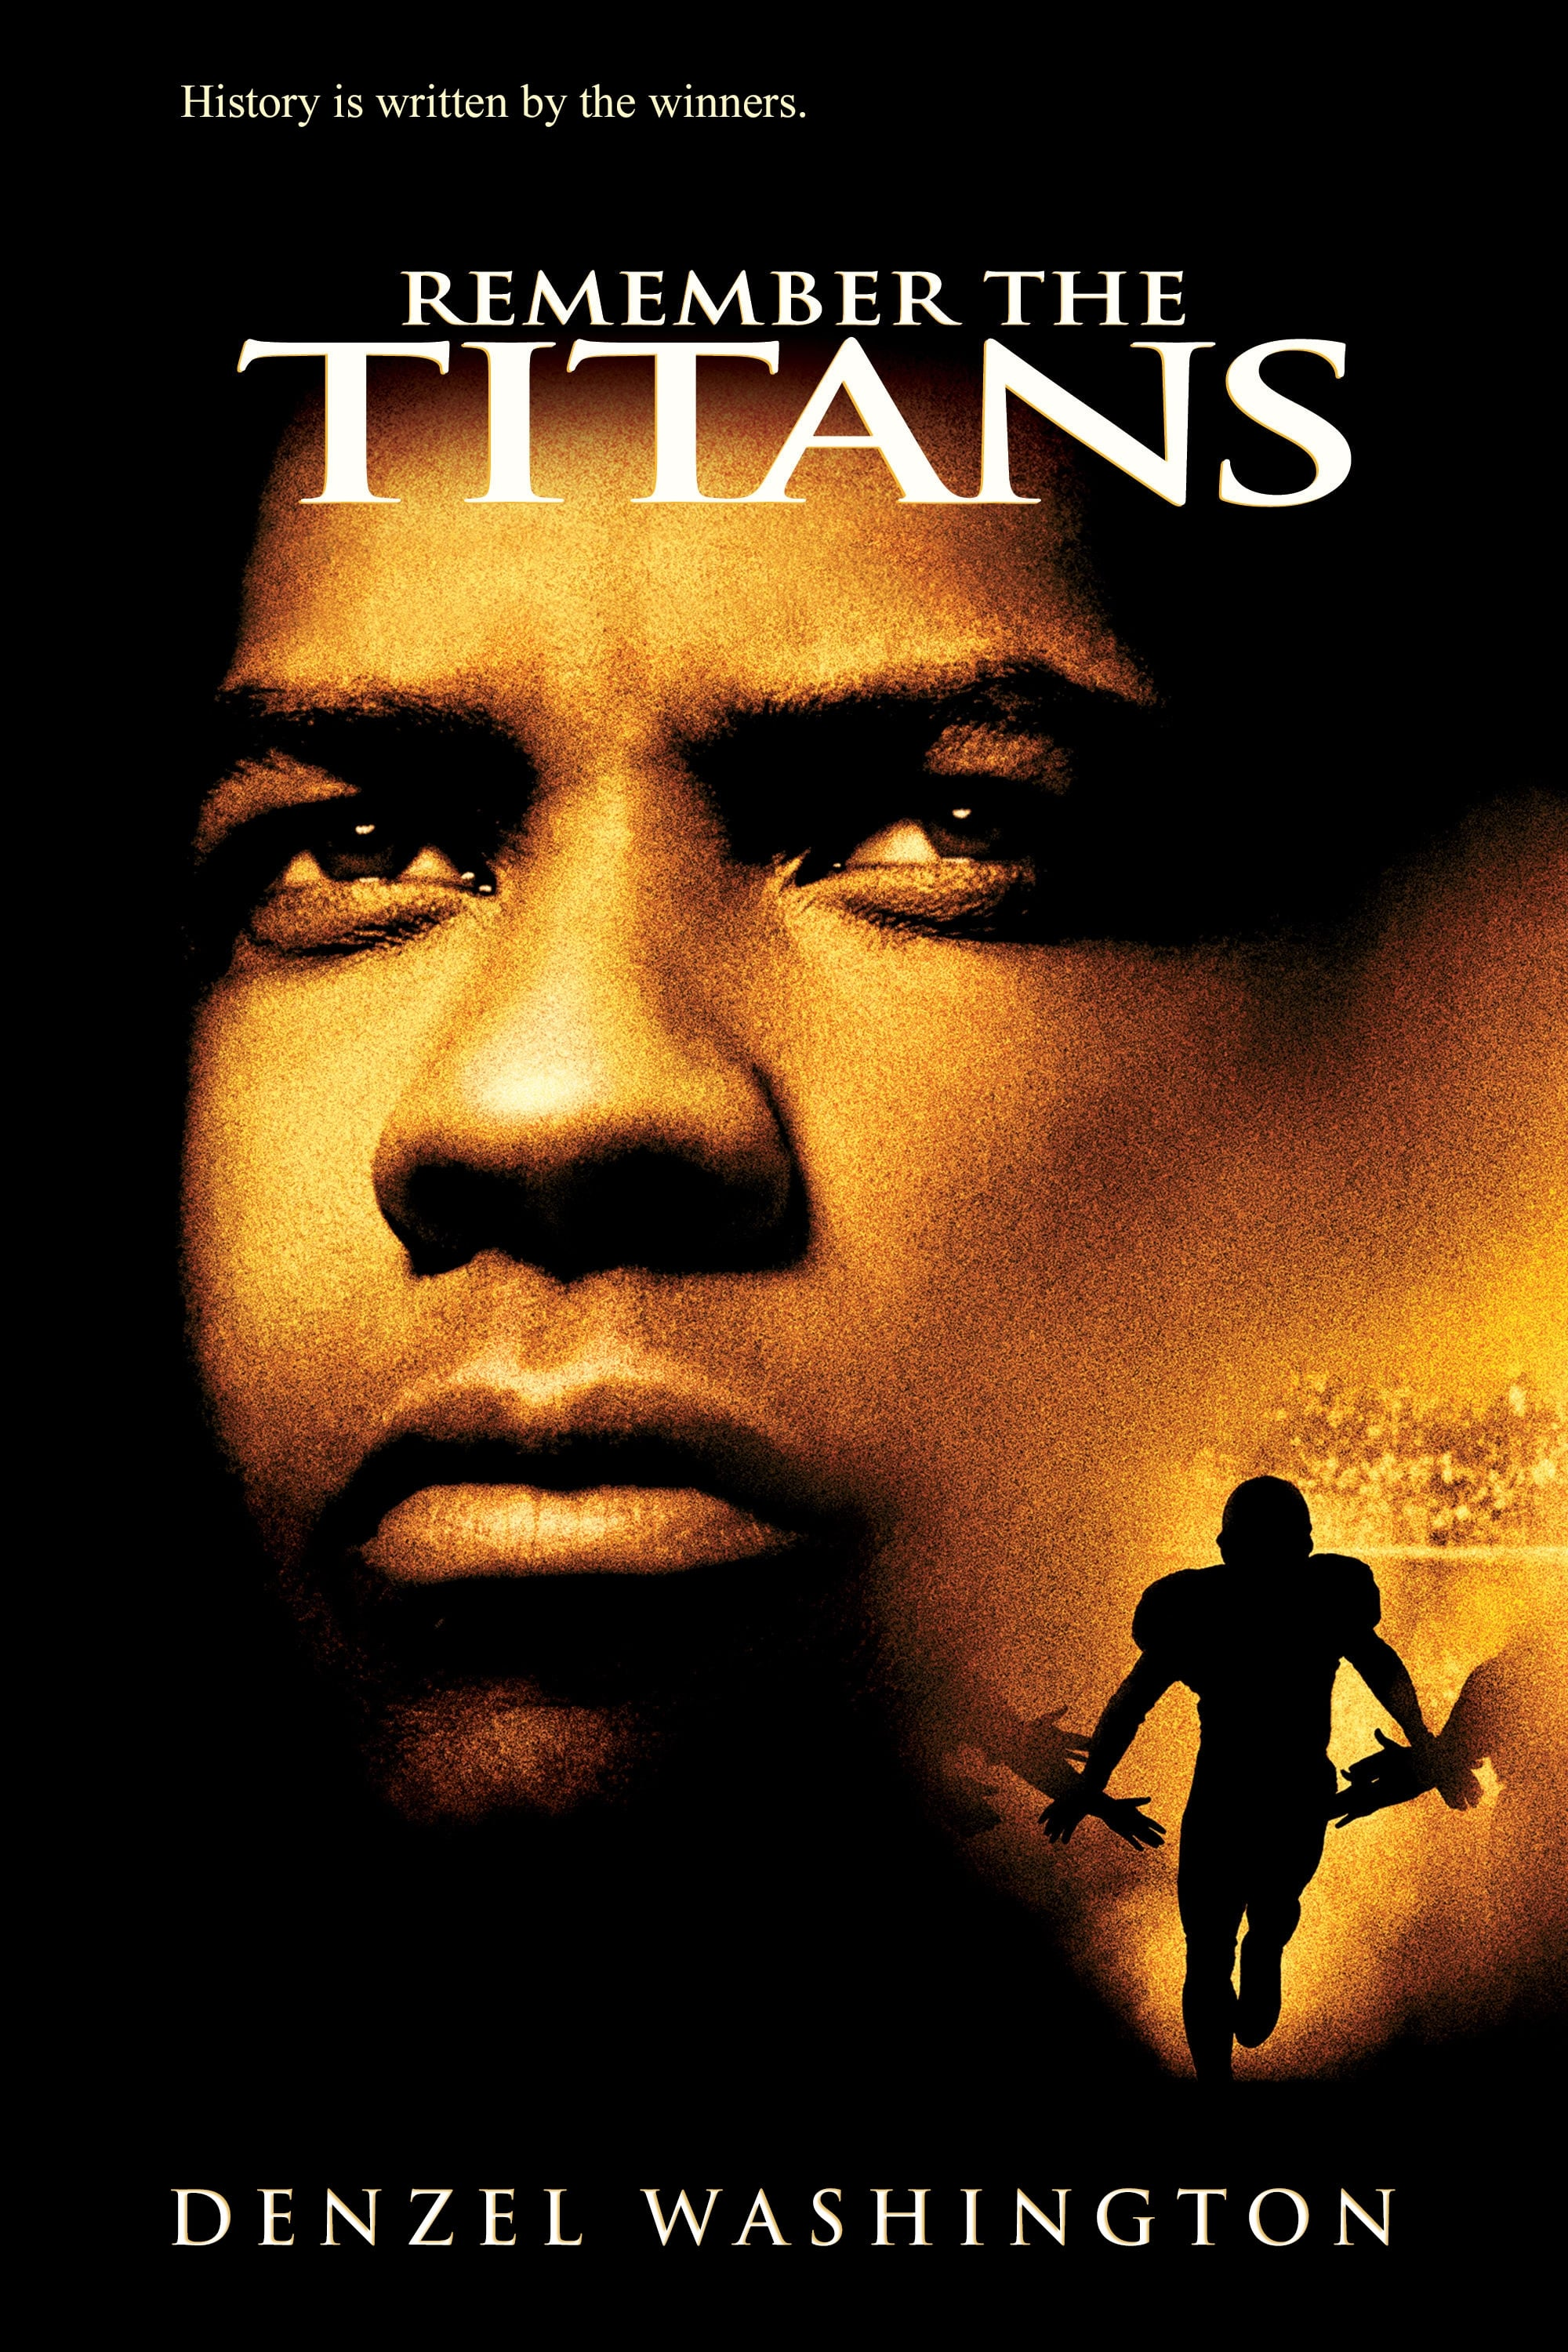 essay on the movie remember the titans Free essay: in the movie remember the titans there are many lessons that every person should learn in their life one of the most important.